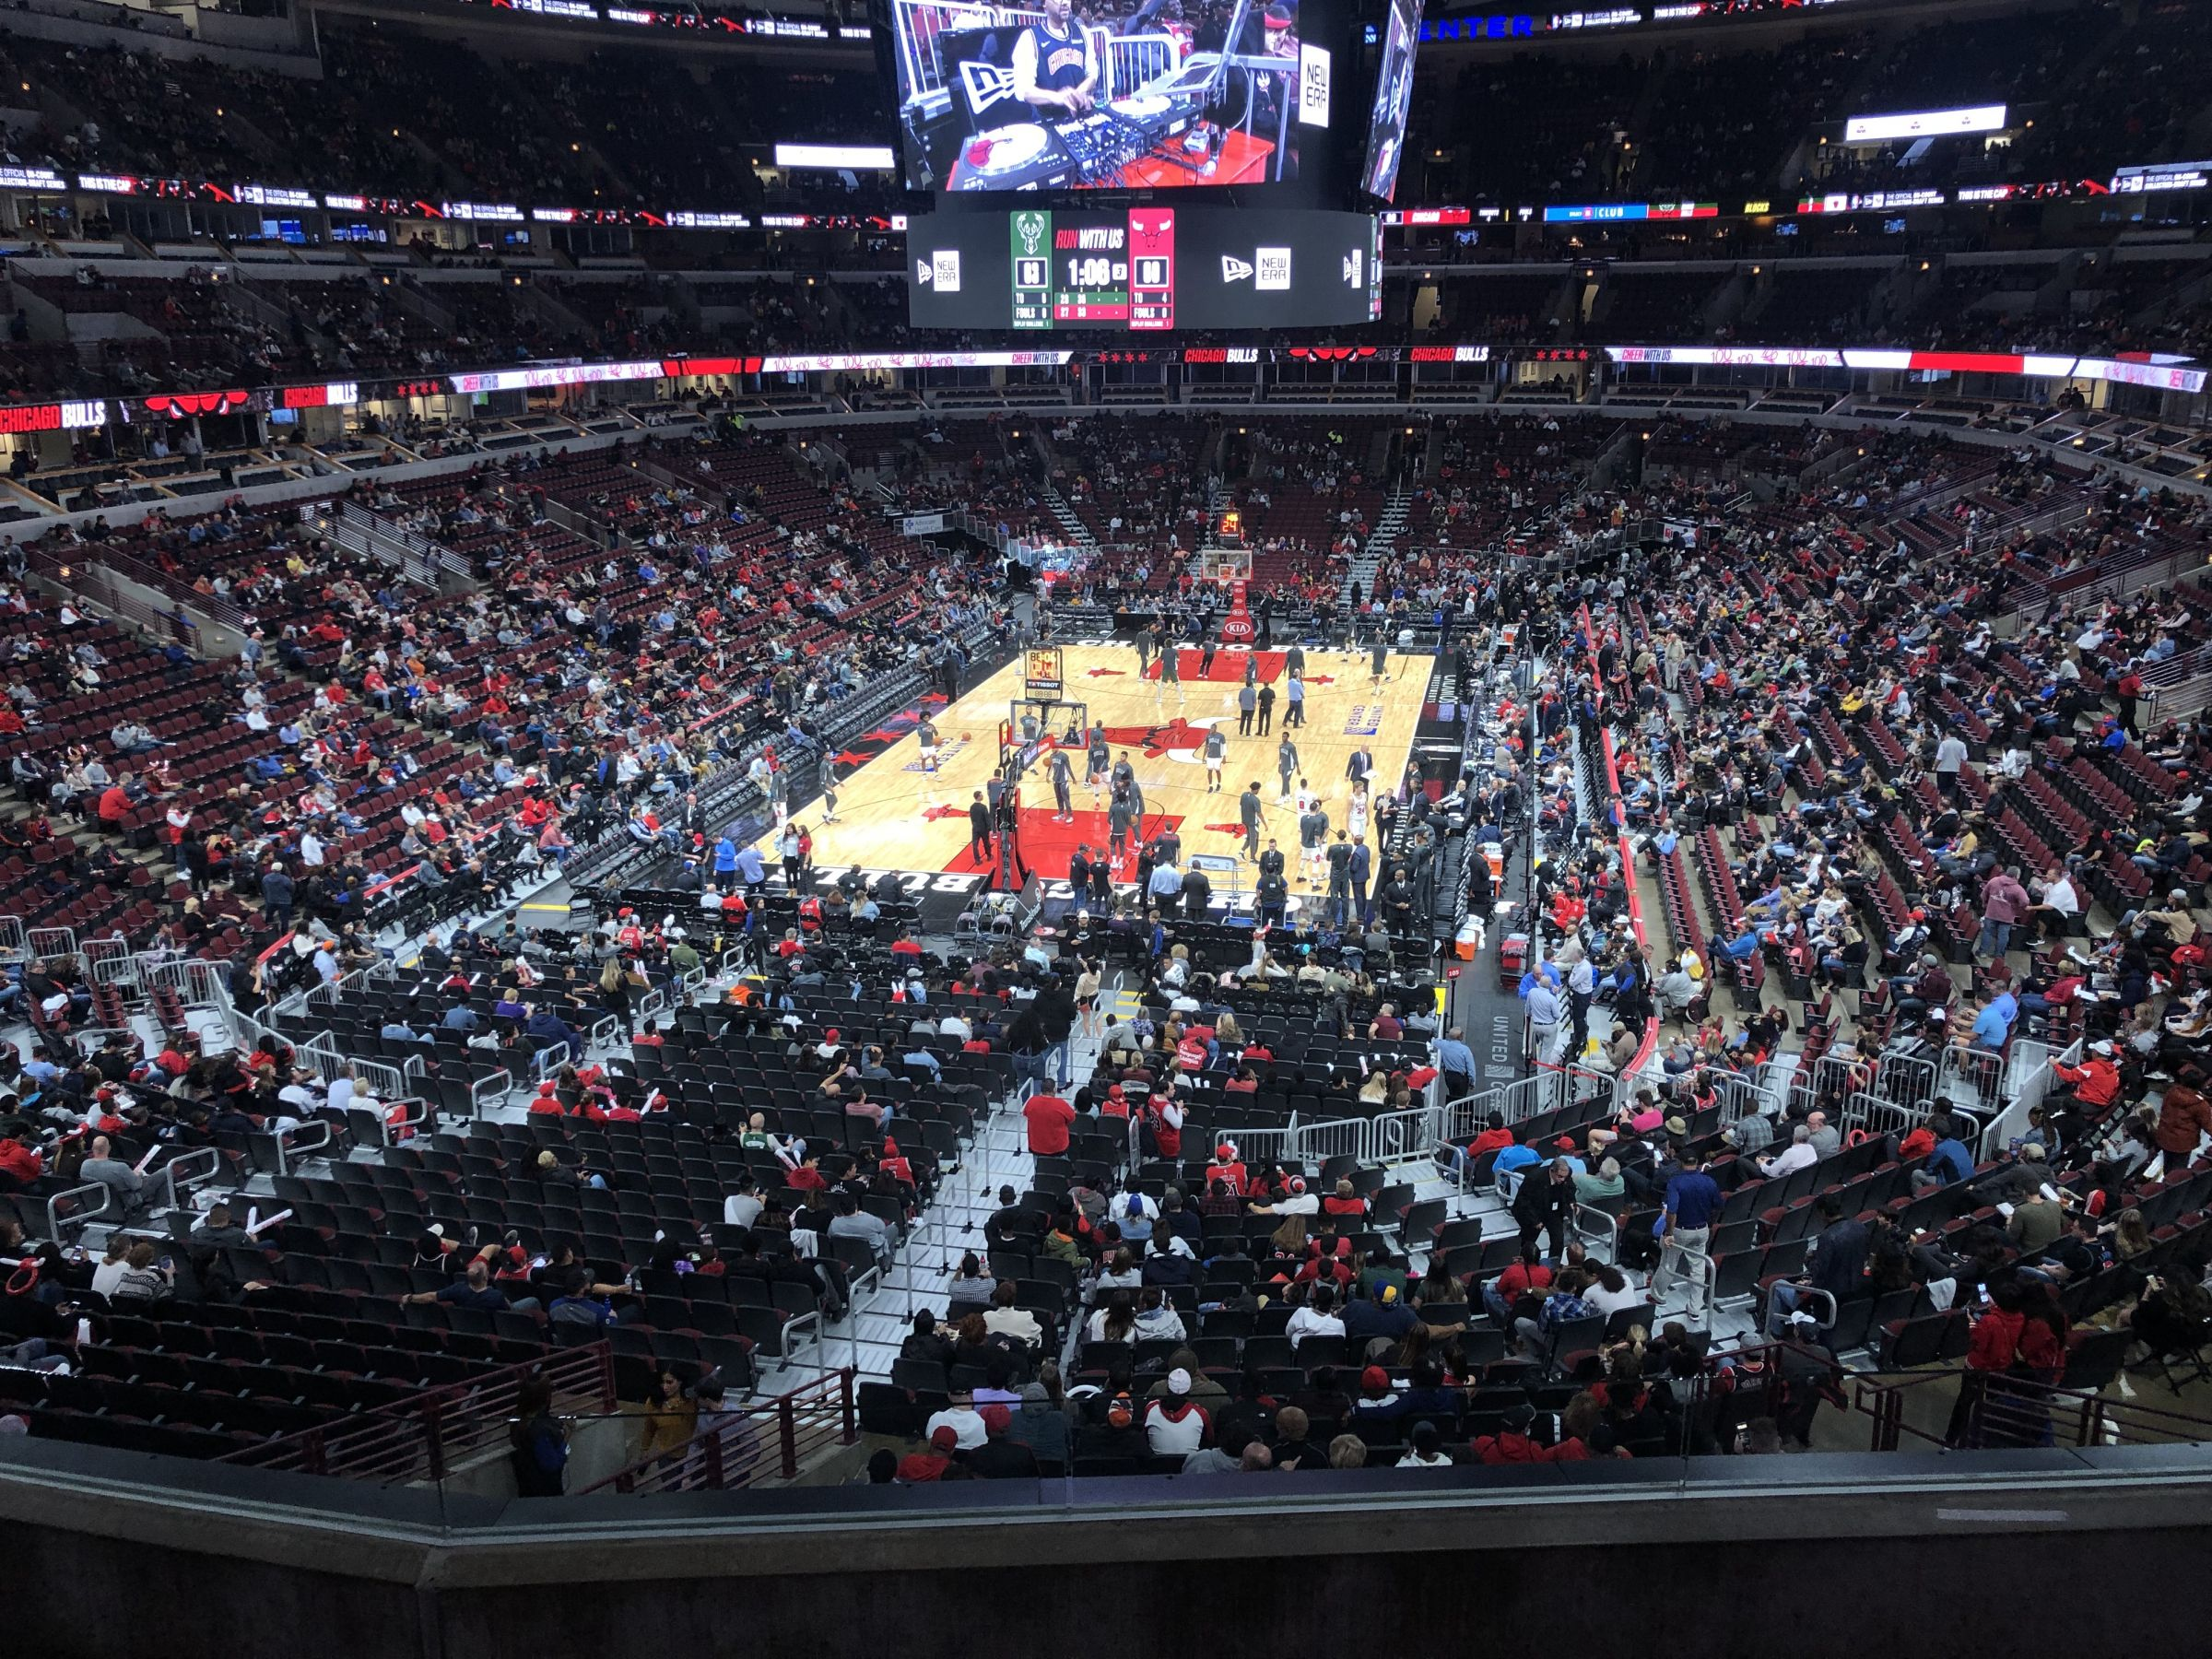 Section 208 seat view